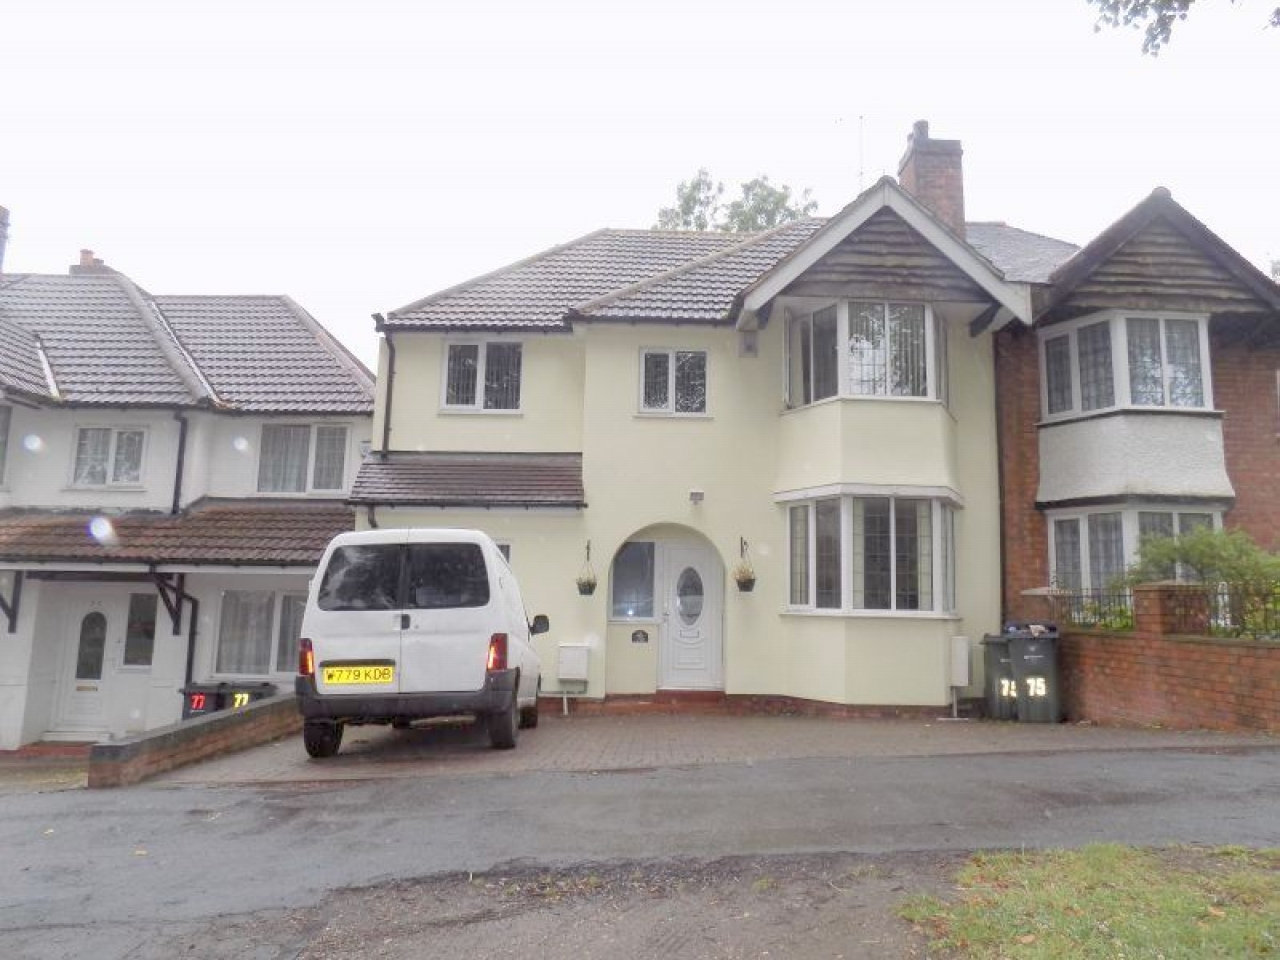 5 Bedroom House For Sale - Image 1